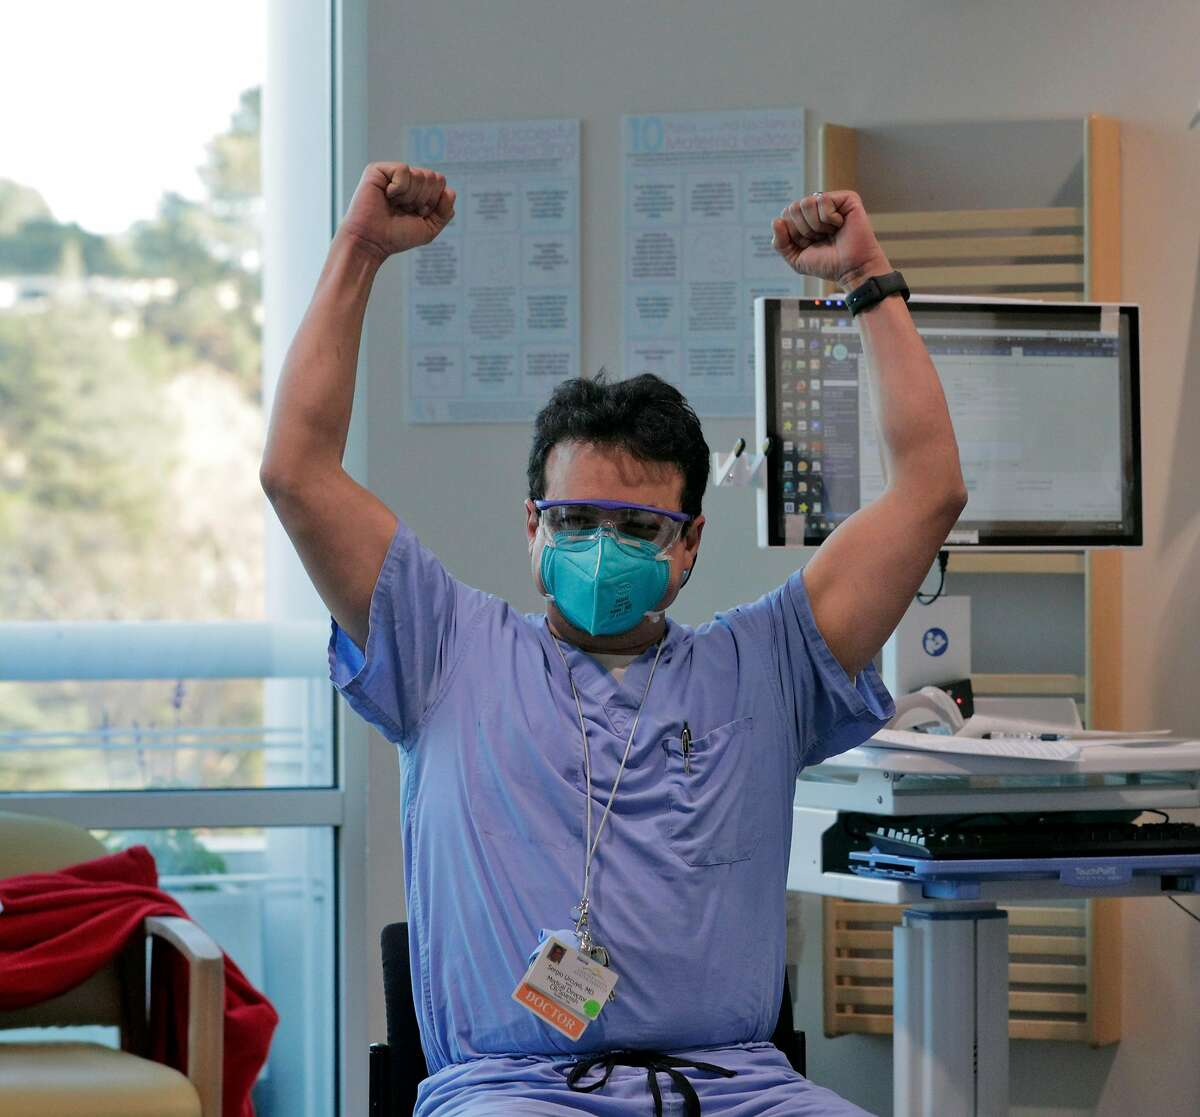 Dr. Sergio Urcuyo raises his arms in triumph after he received his COVID-19 vaccine injection from nurse Kathy Ferris at Contra Costa County Regional Medical Center in Martinez.